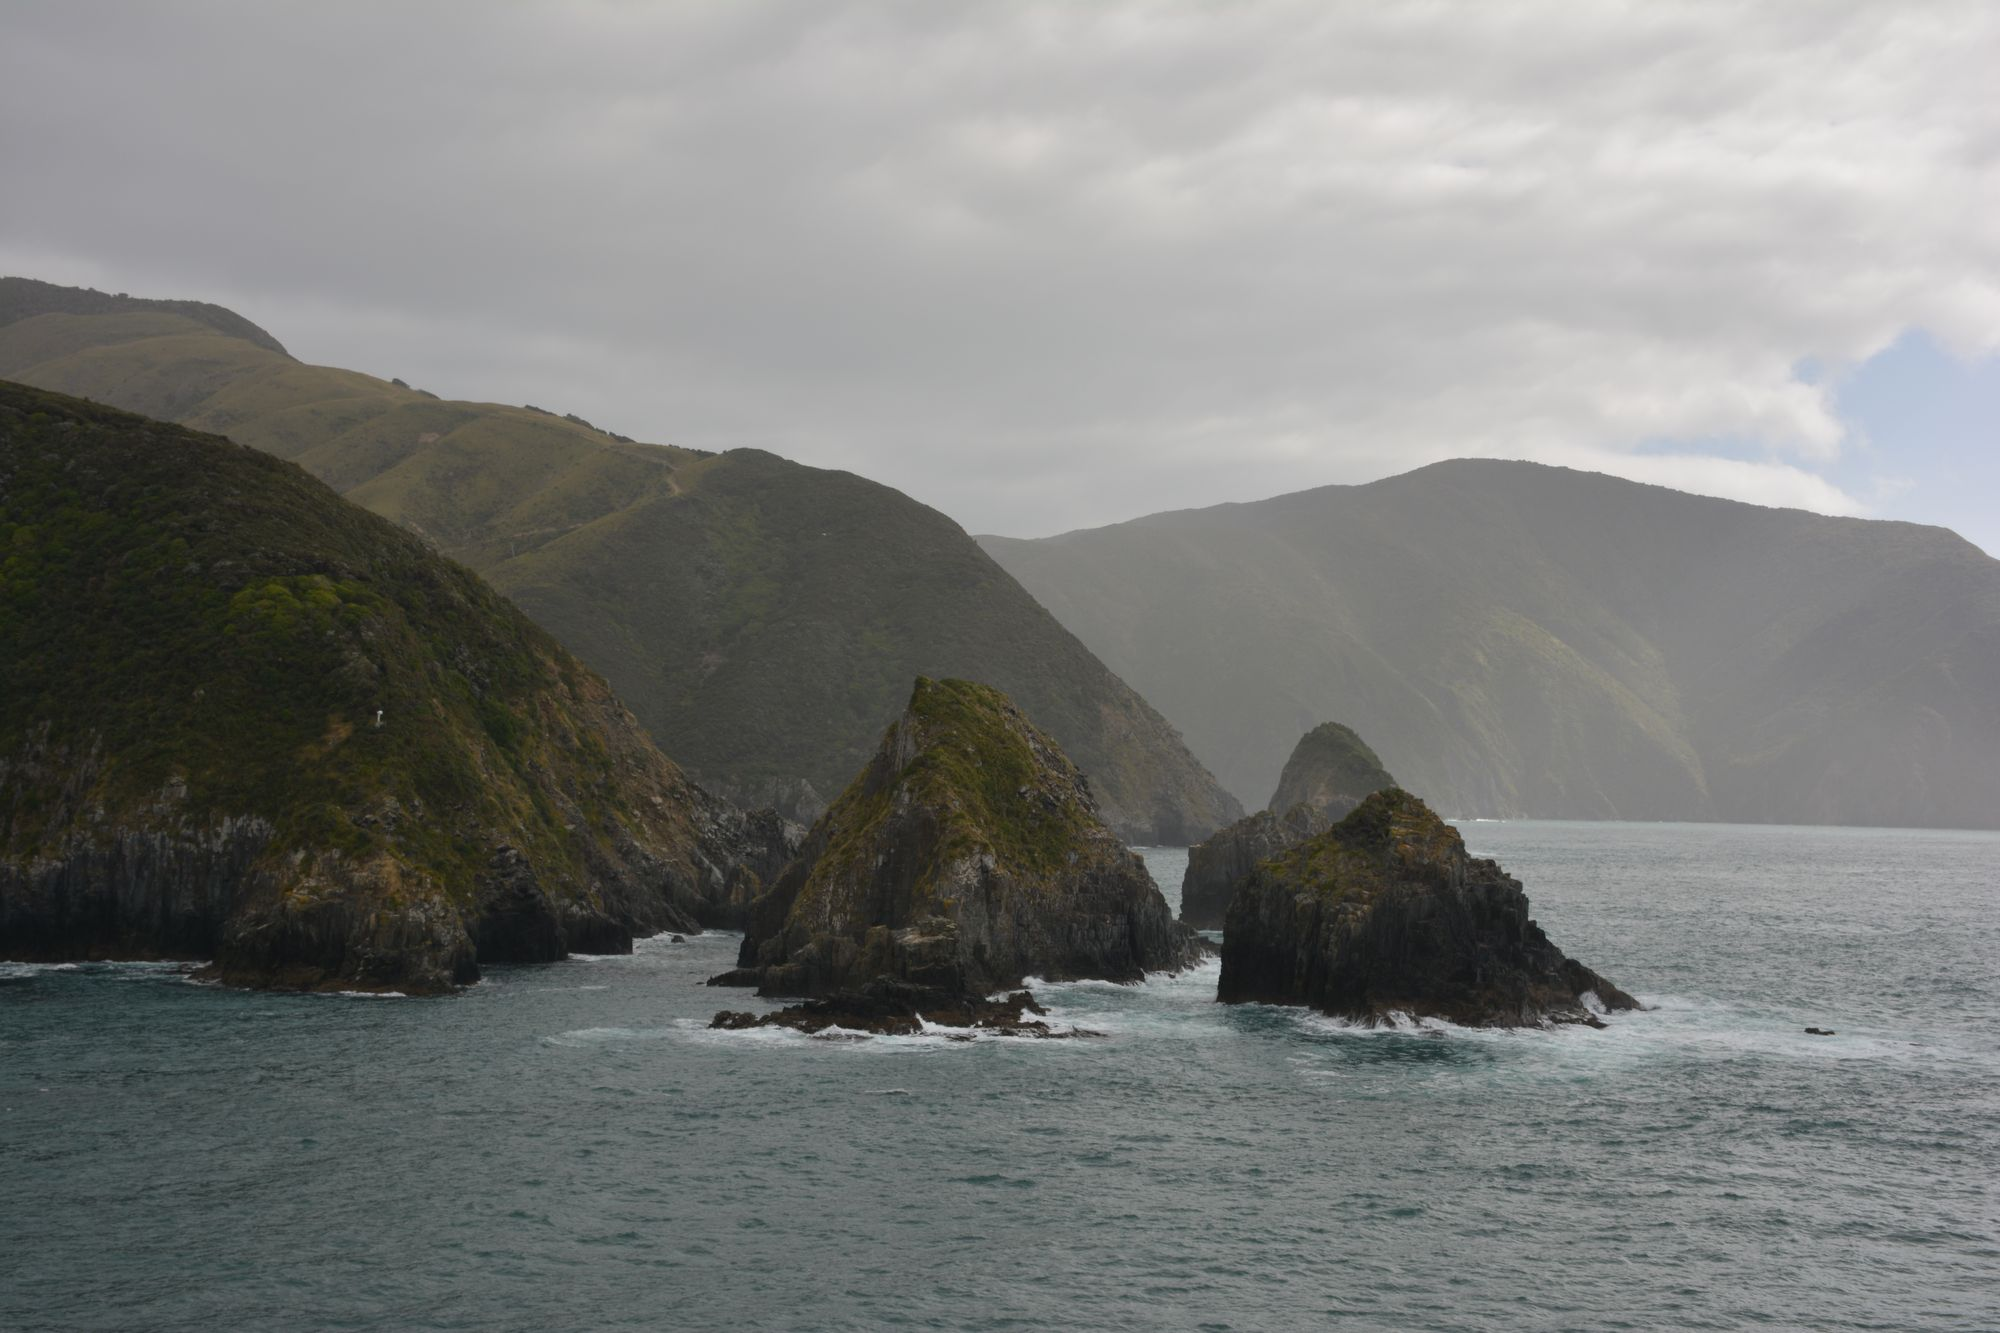 Sea and mountains in Cook Strait